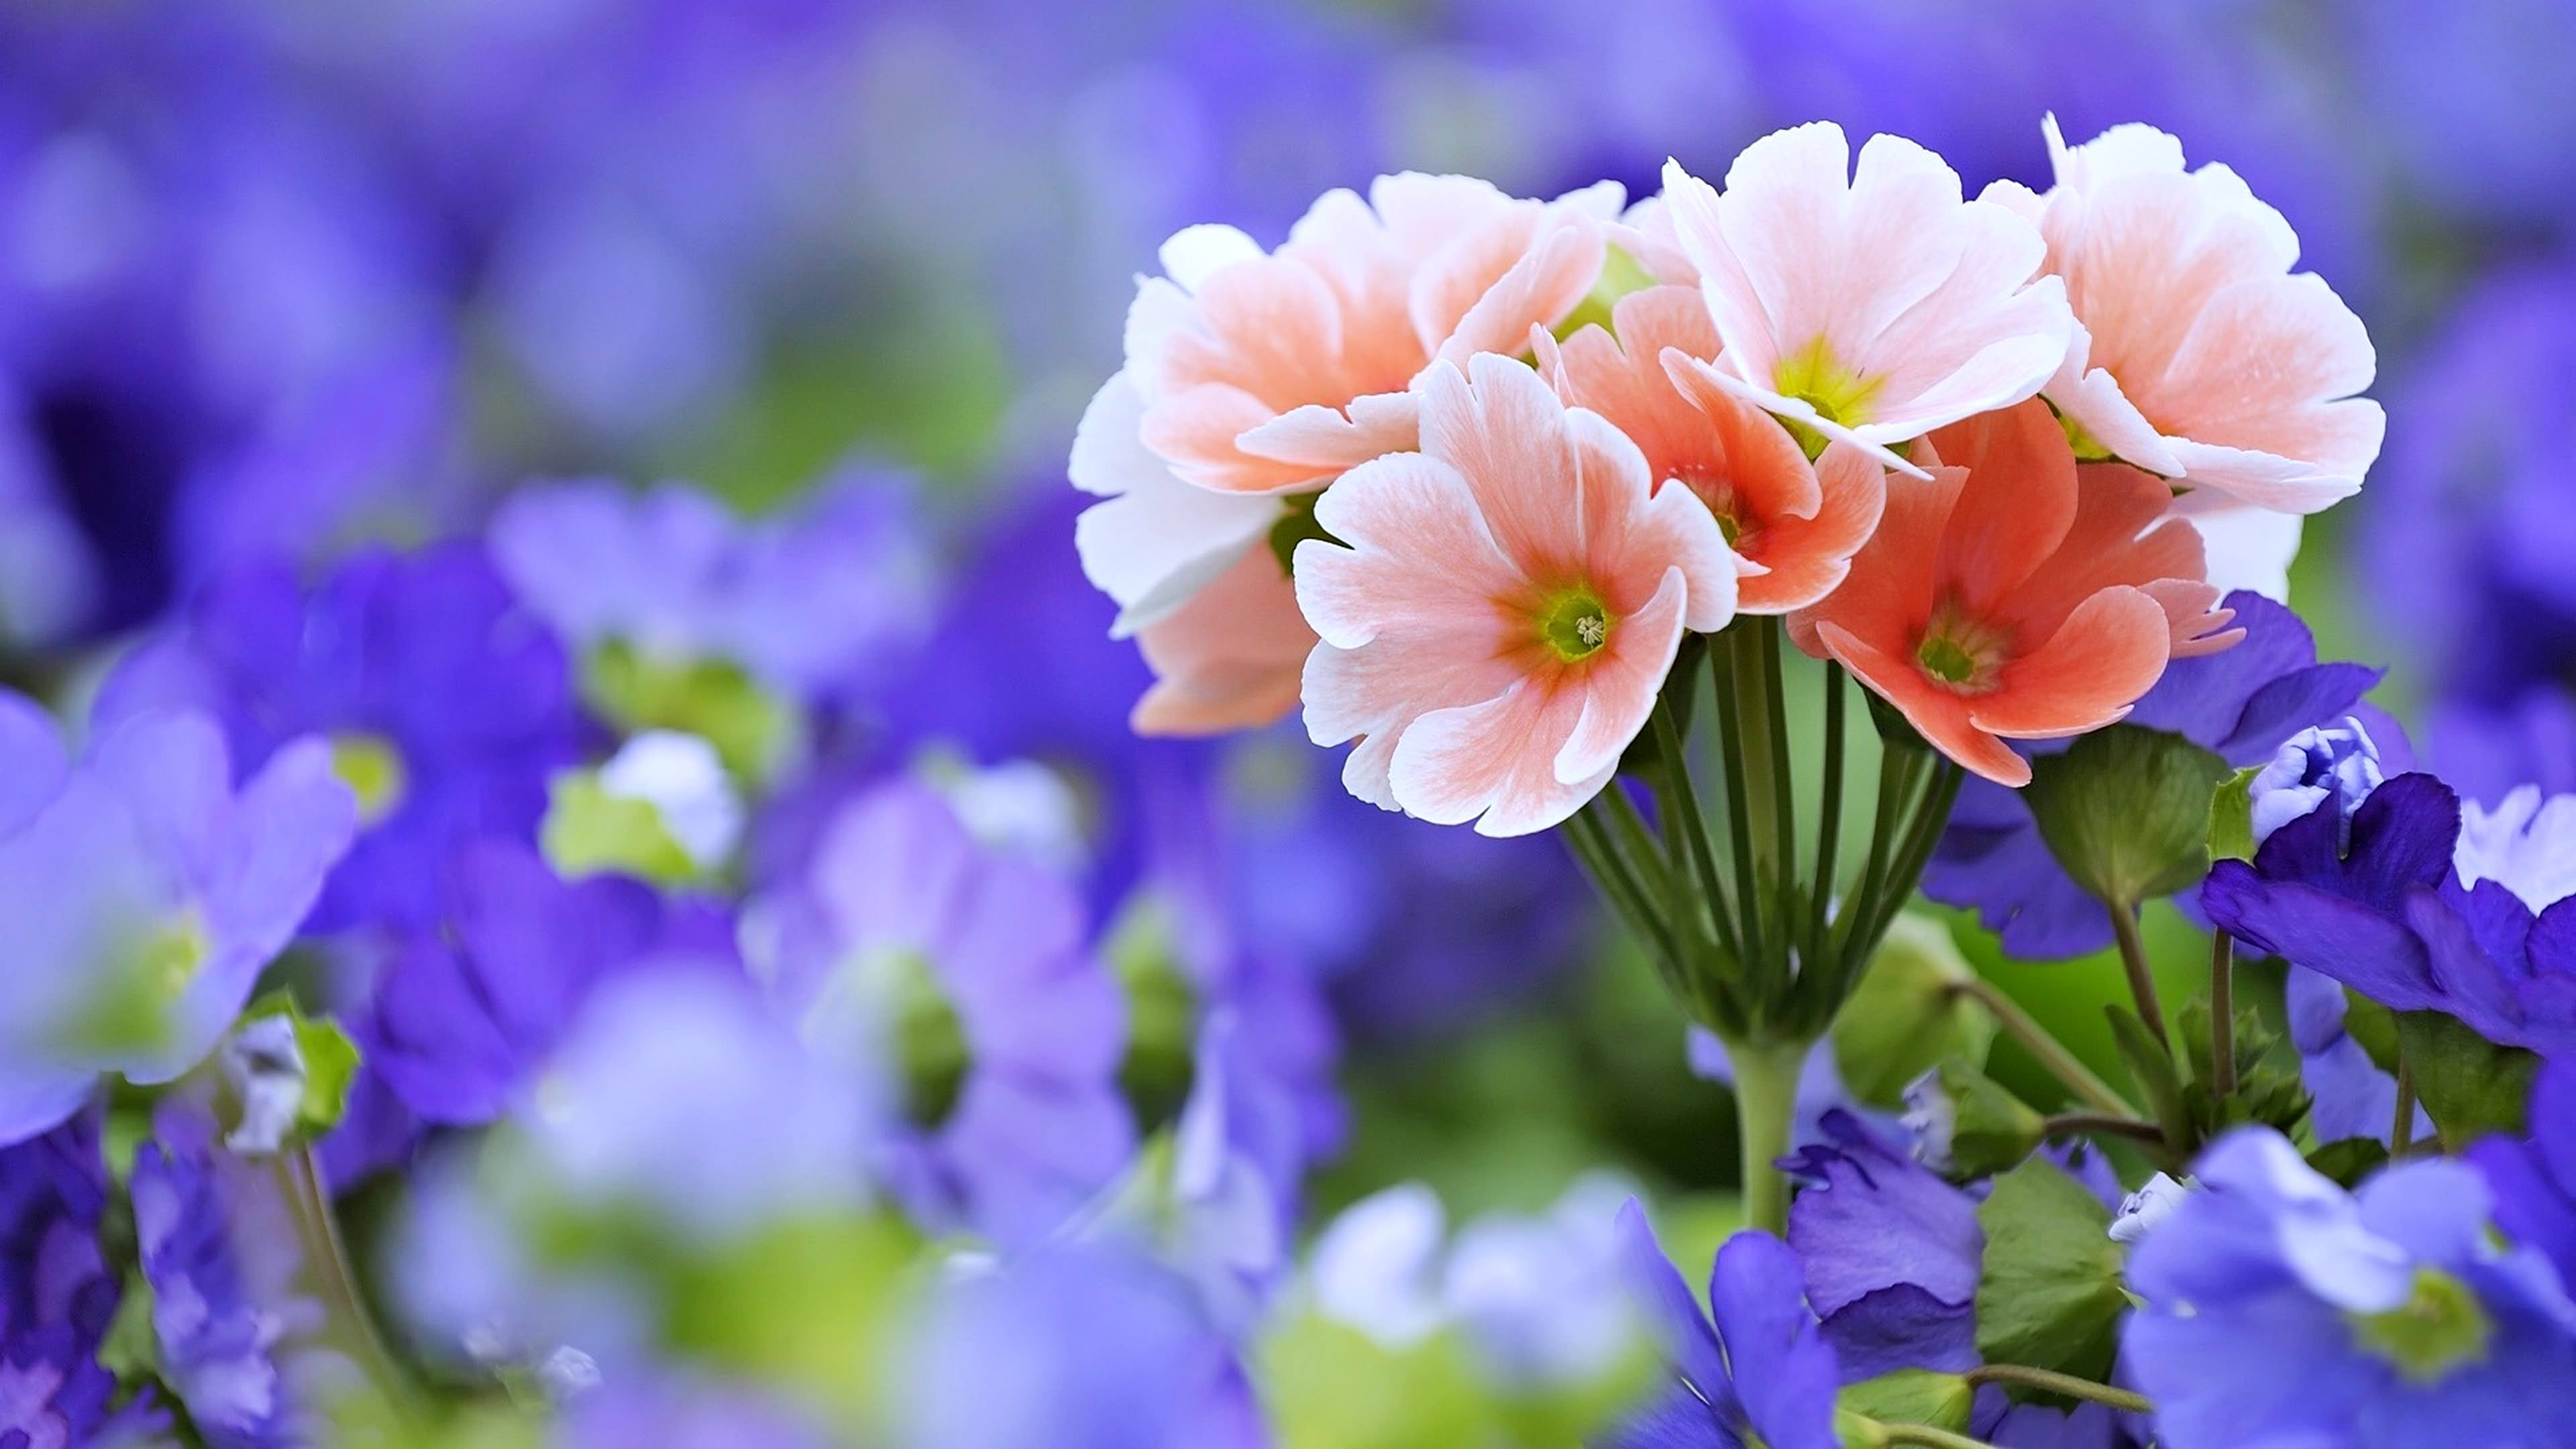 Ultra HD Flower Bouquet Wallpaper